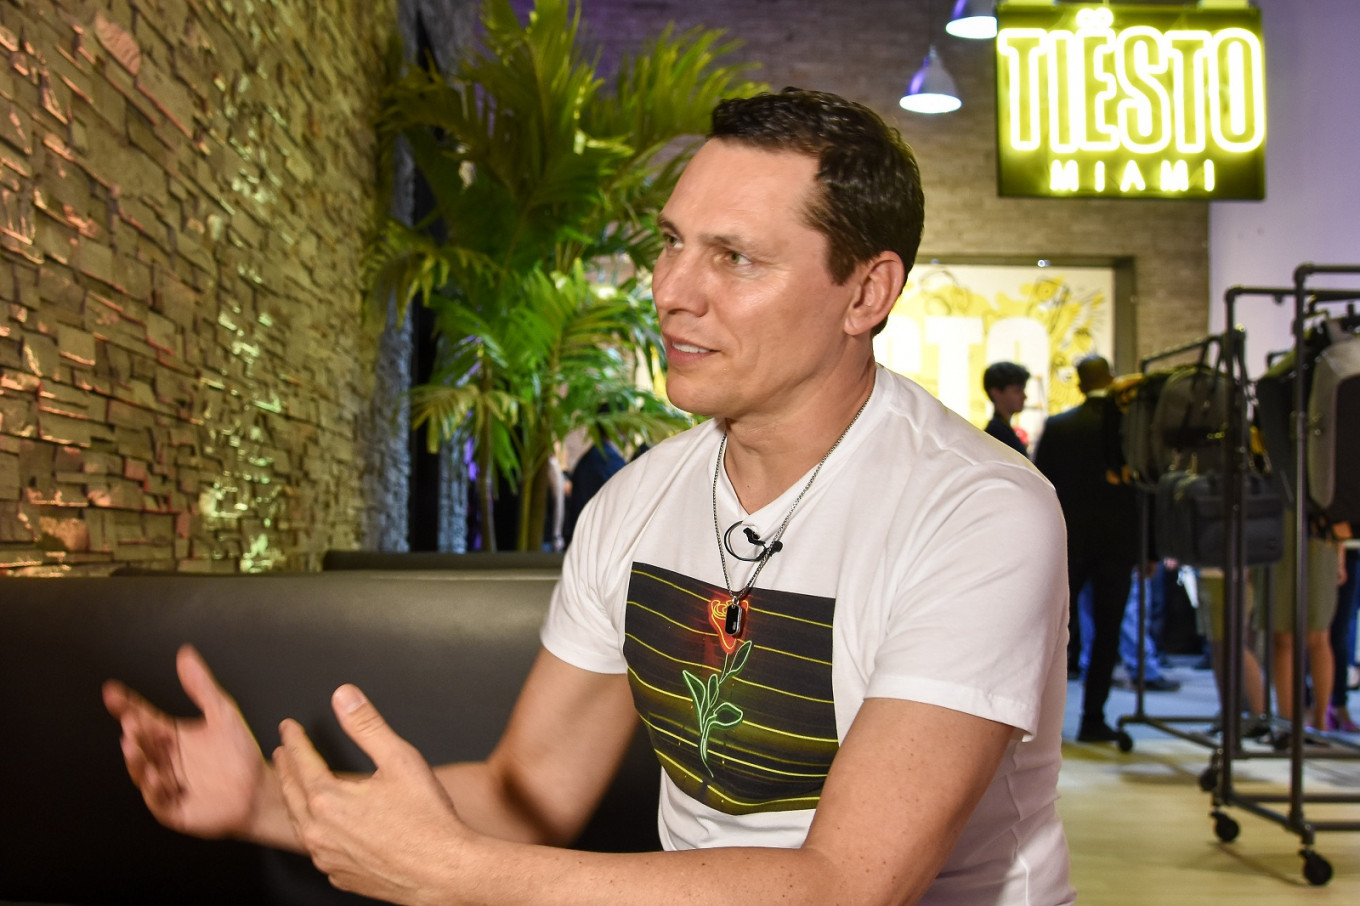 Tiesto, Afrojack to spin at opening weekend of Marquee Singapore